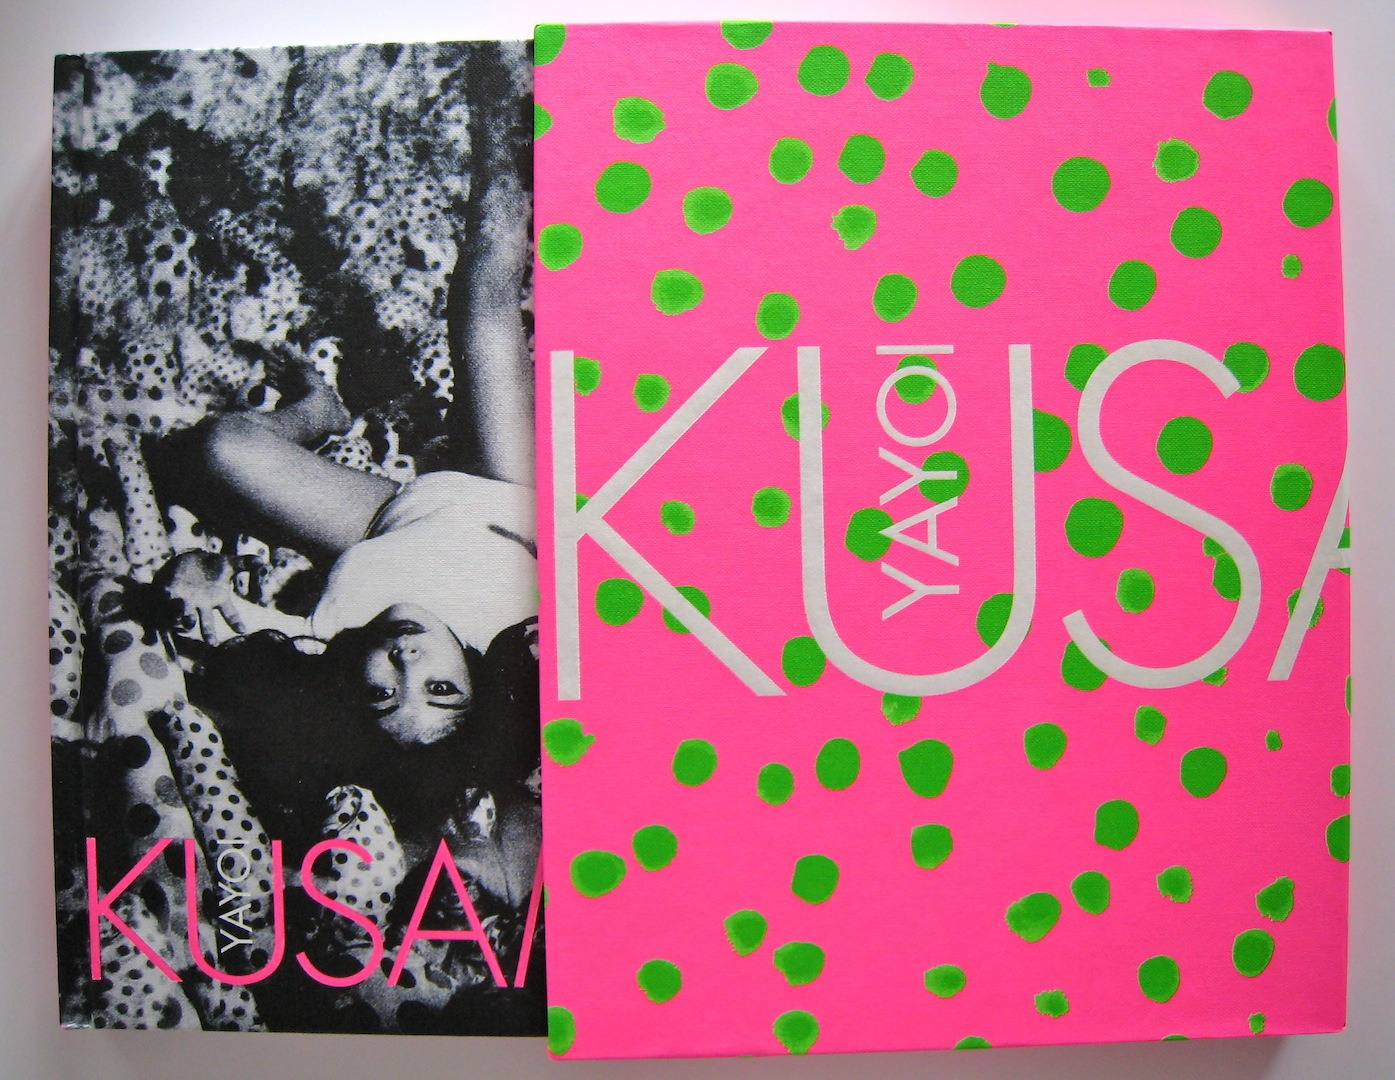 Yayoi Kusama, Tate exhibition book, 2012 (signed and numbered)